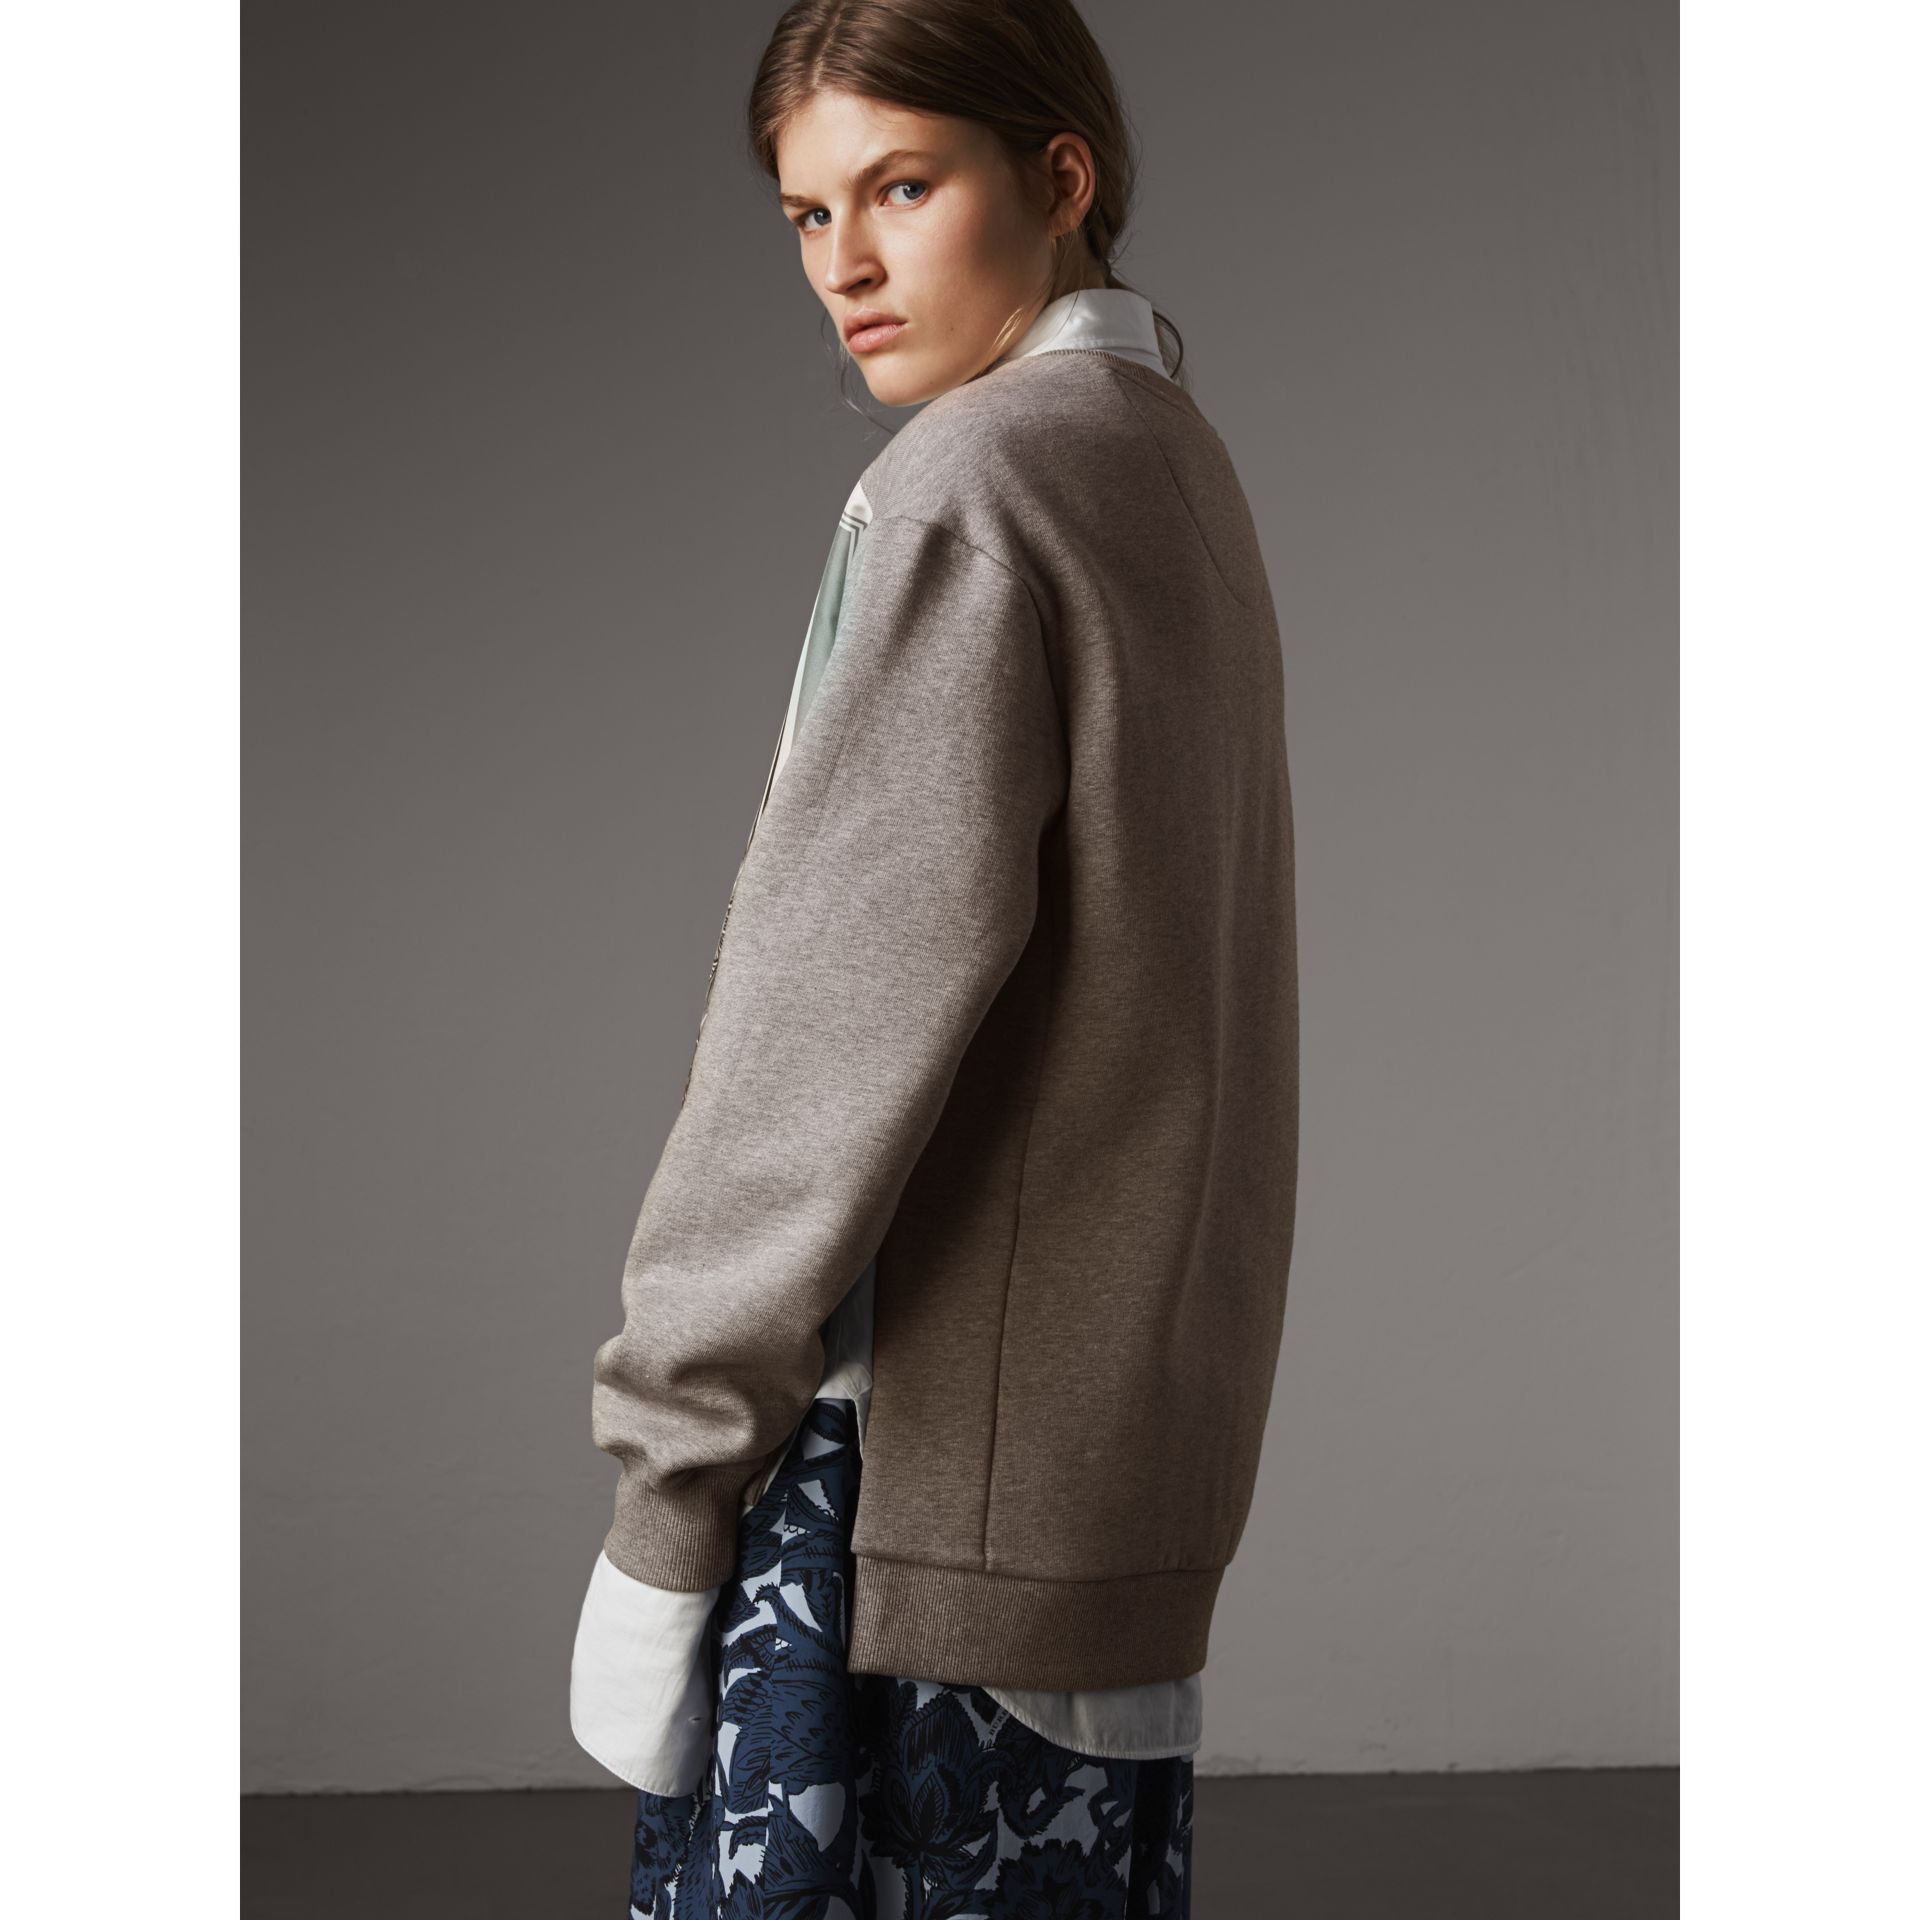 Beasts Print Silk Panel Jersey Sweatshirt in Pale Grey Melange - Women | Burberry - gallery image 3